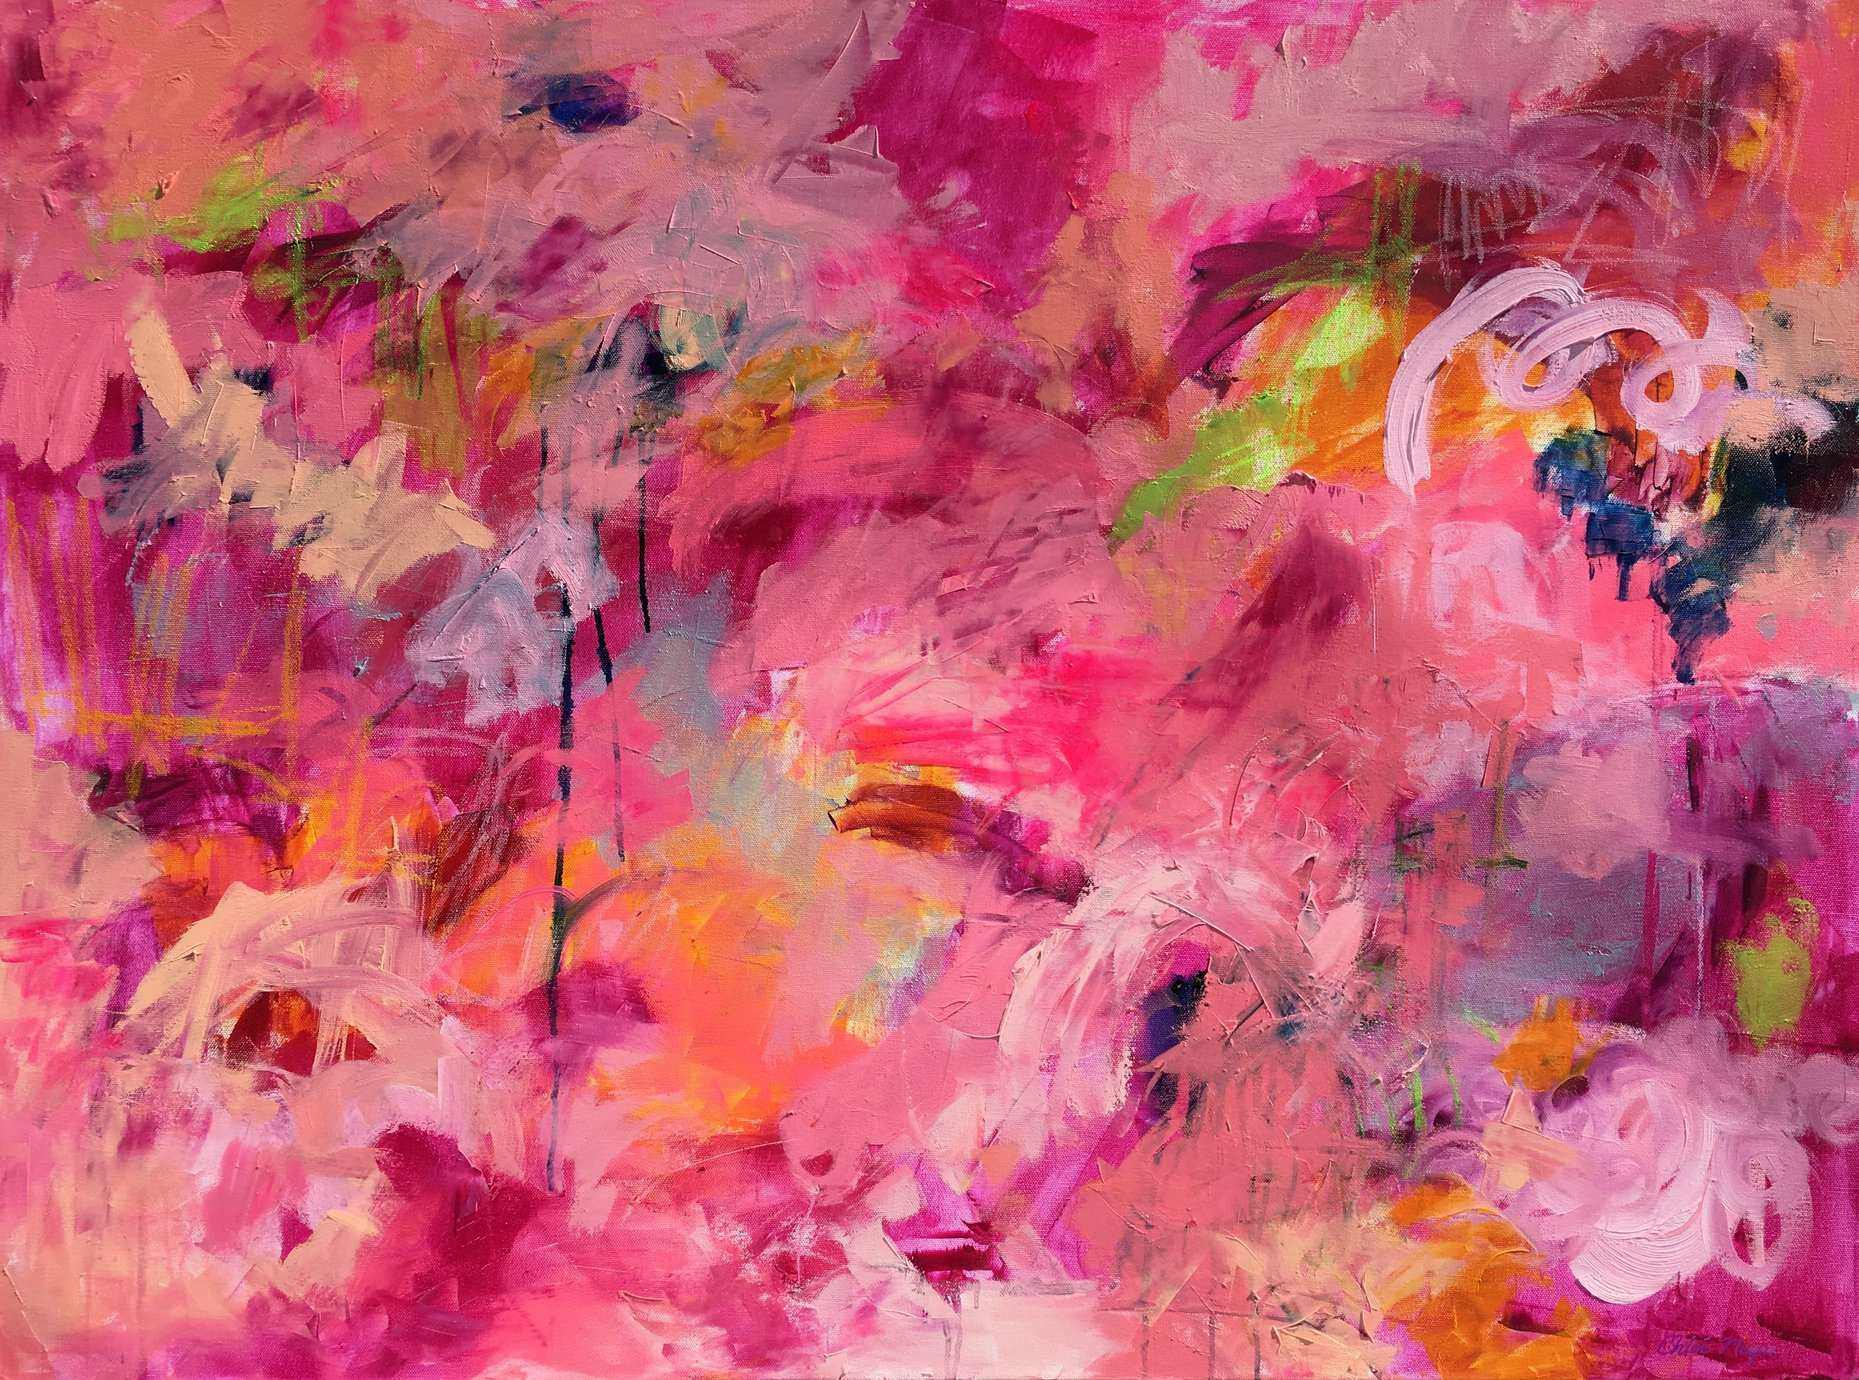 Foolish Pleasure, painting by abstract artist Chloe Meyer